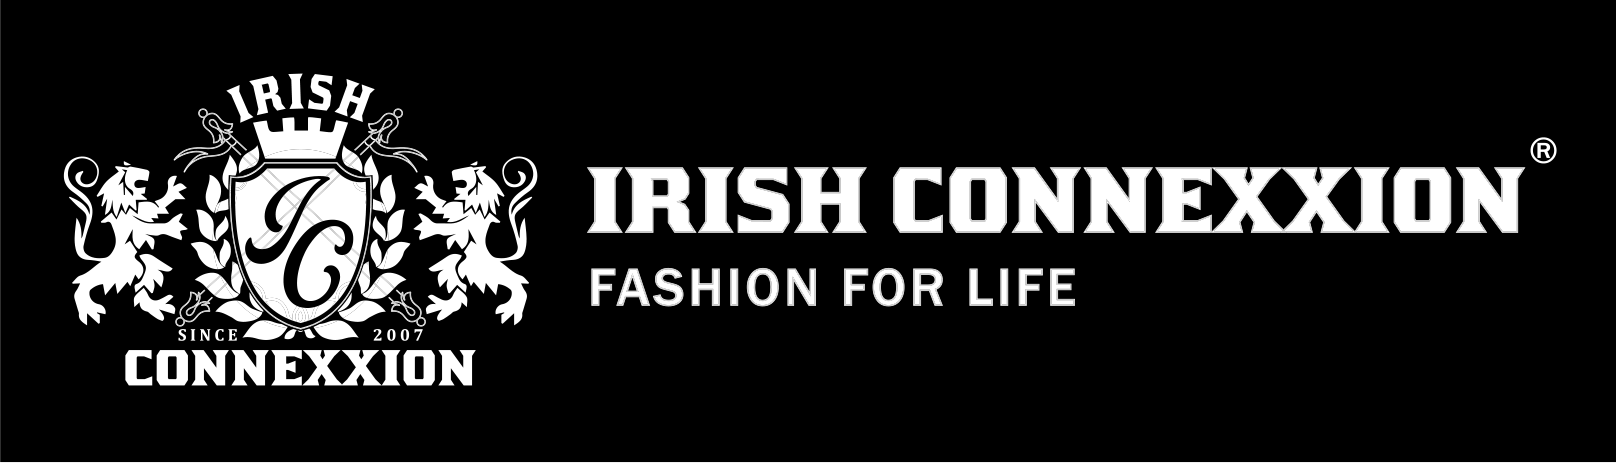 Irish Connexxion Active Wear